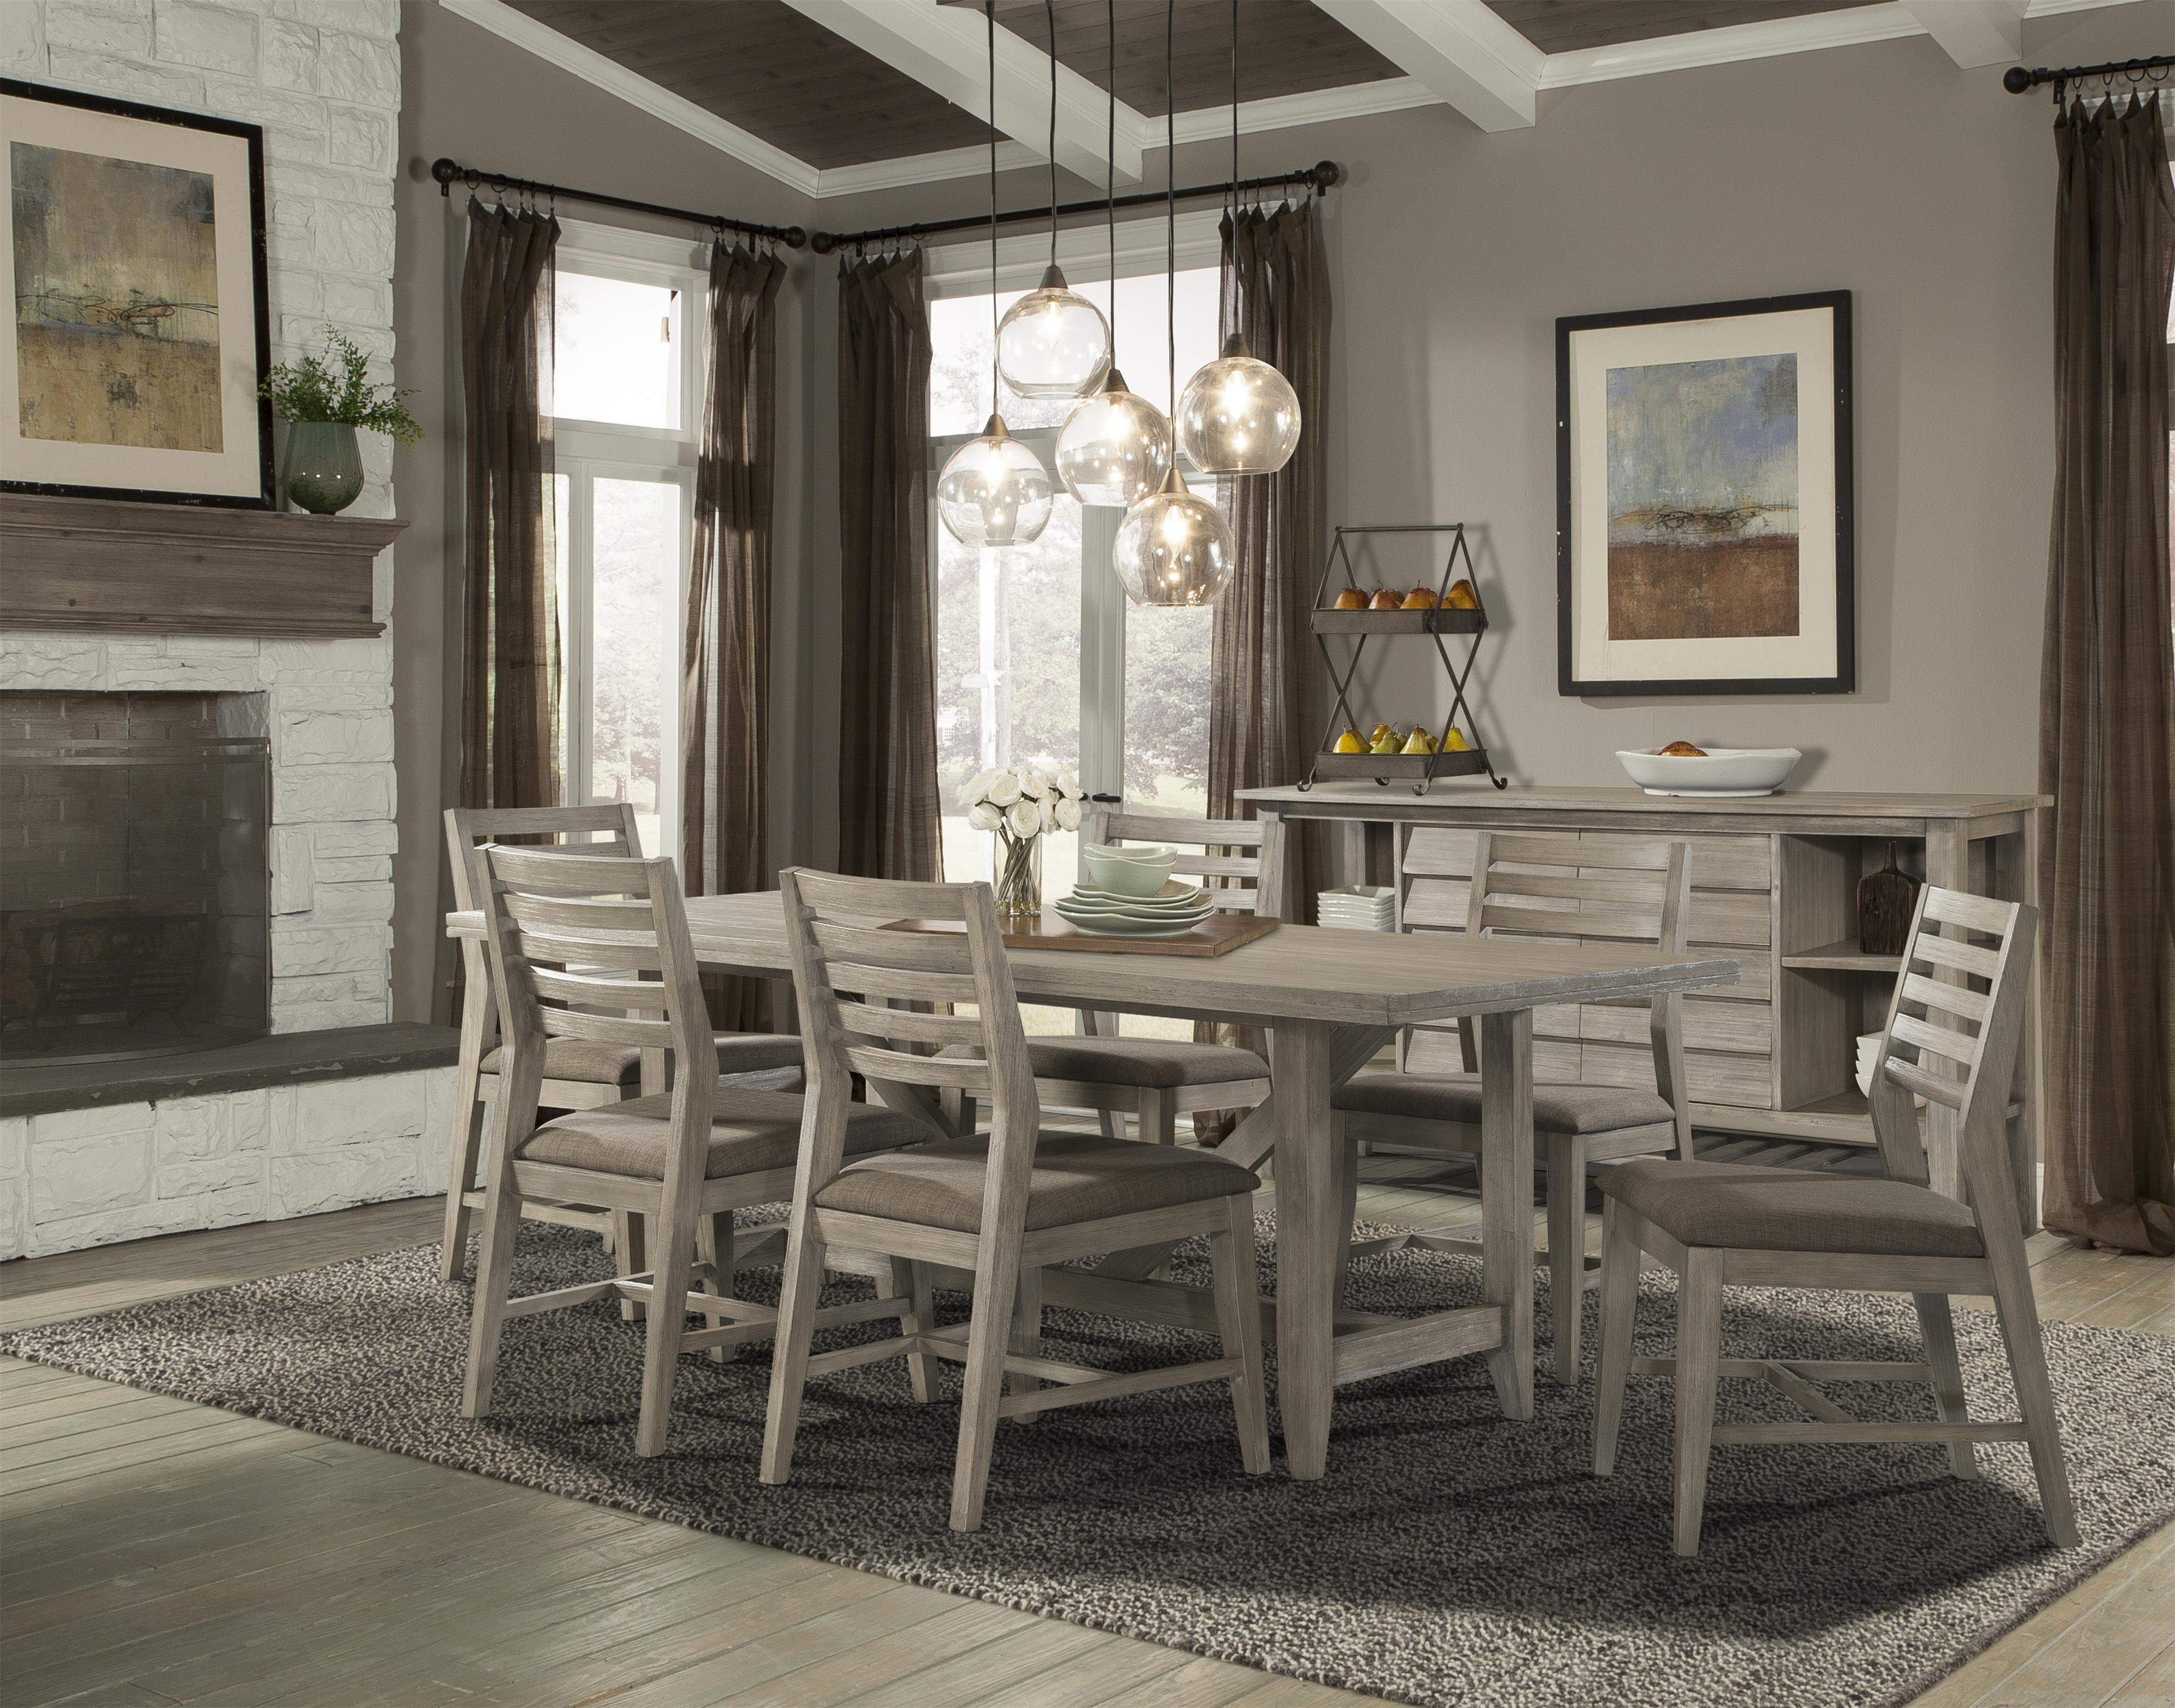 Cresent Fine Furniture Corliss Landing Casual Dining Room Group - Item Number: 5600 Dining Room Group 1